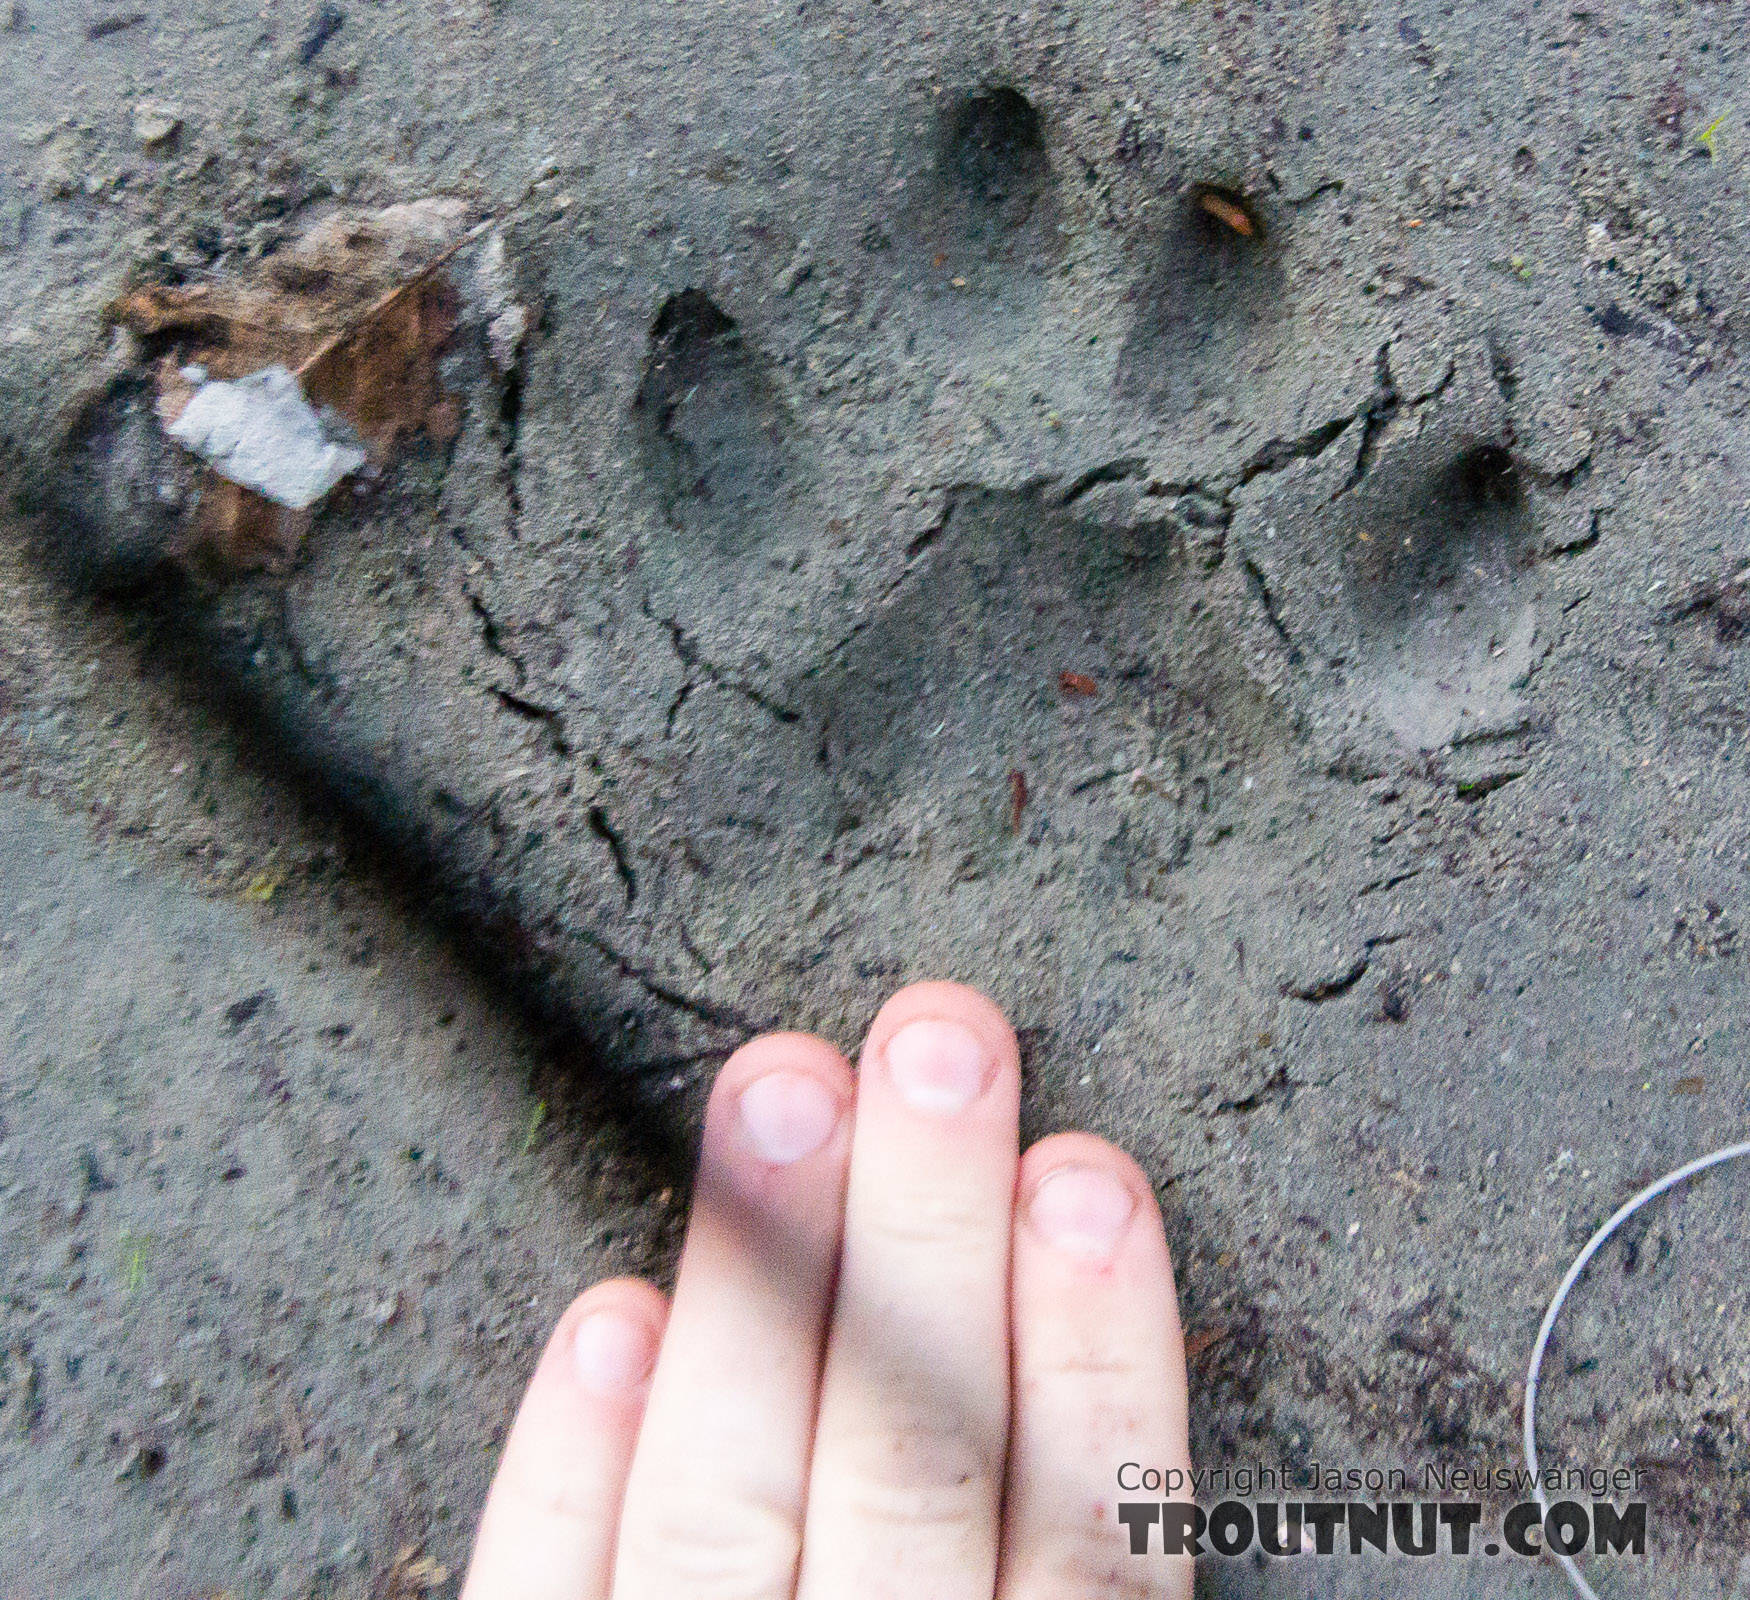 Closeup of a mountain lion track From the Middle Fork Snoqualmie River in Washington.